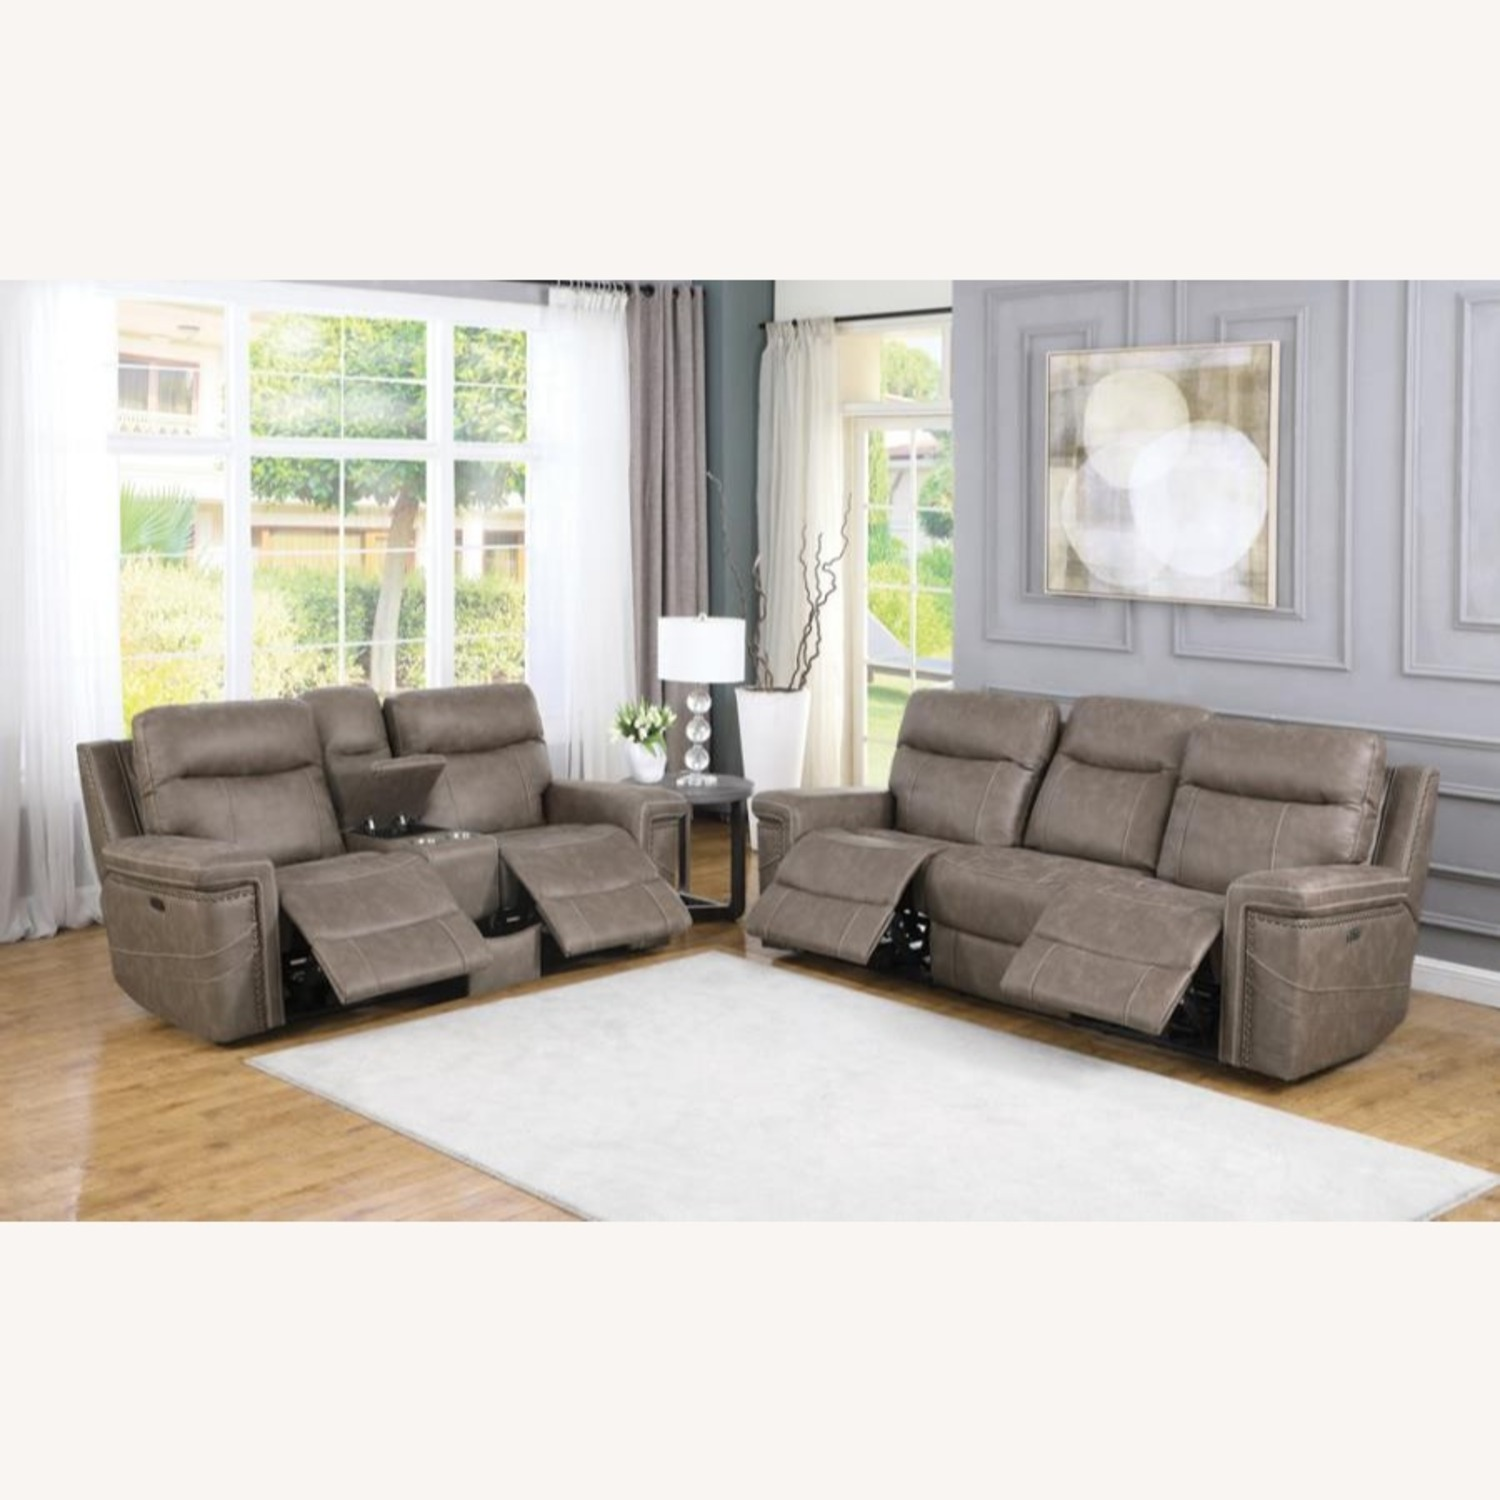 Power Loveseat Recliner In Taupe Upholstery - image-8